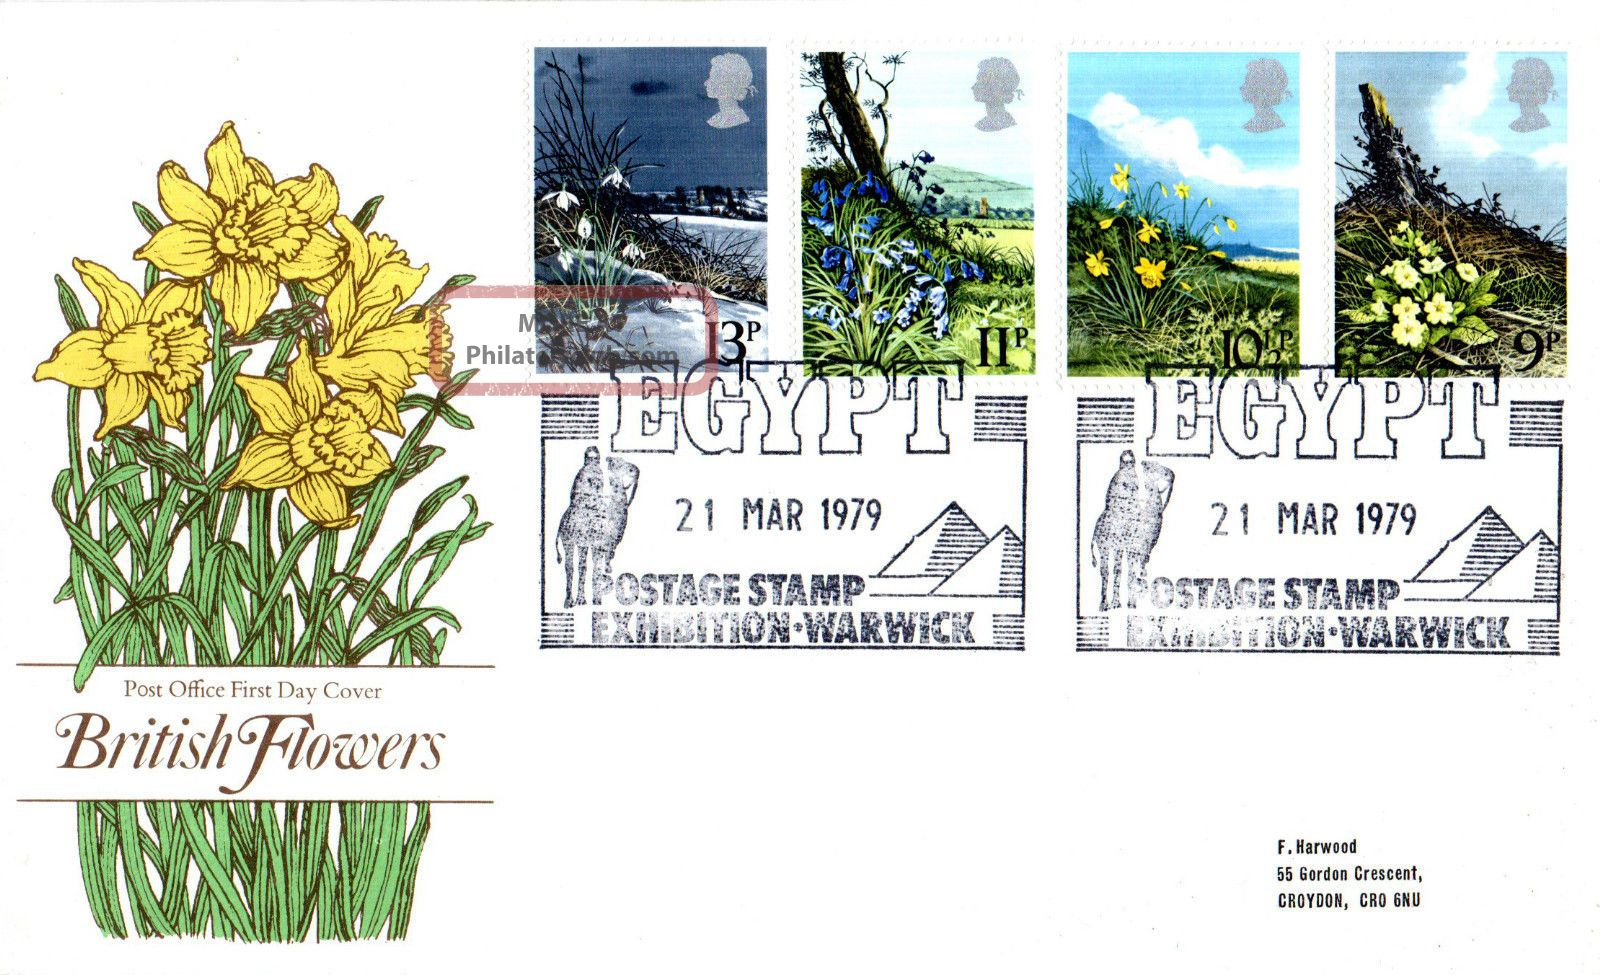 21 March 1979 Spring Flowers Post Office First Day Cover Egypt Exhibition Shs Topical Stamps photo